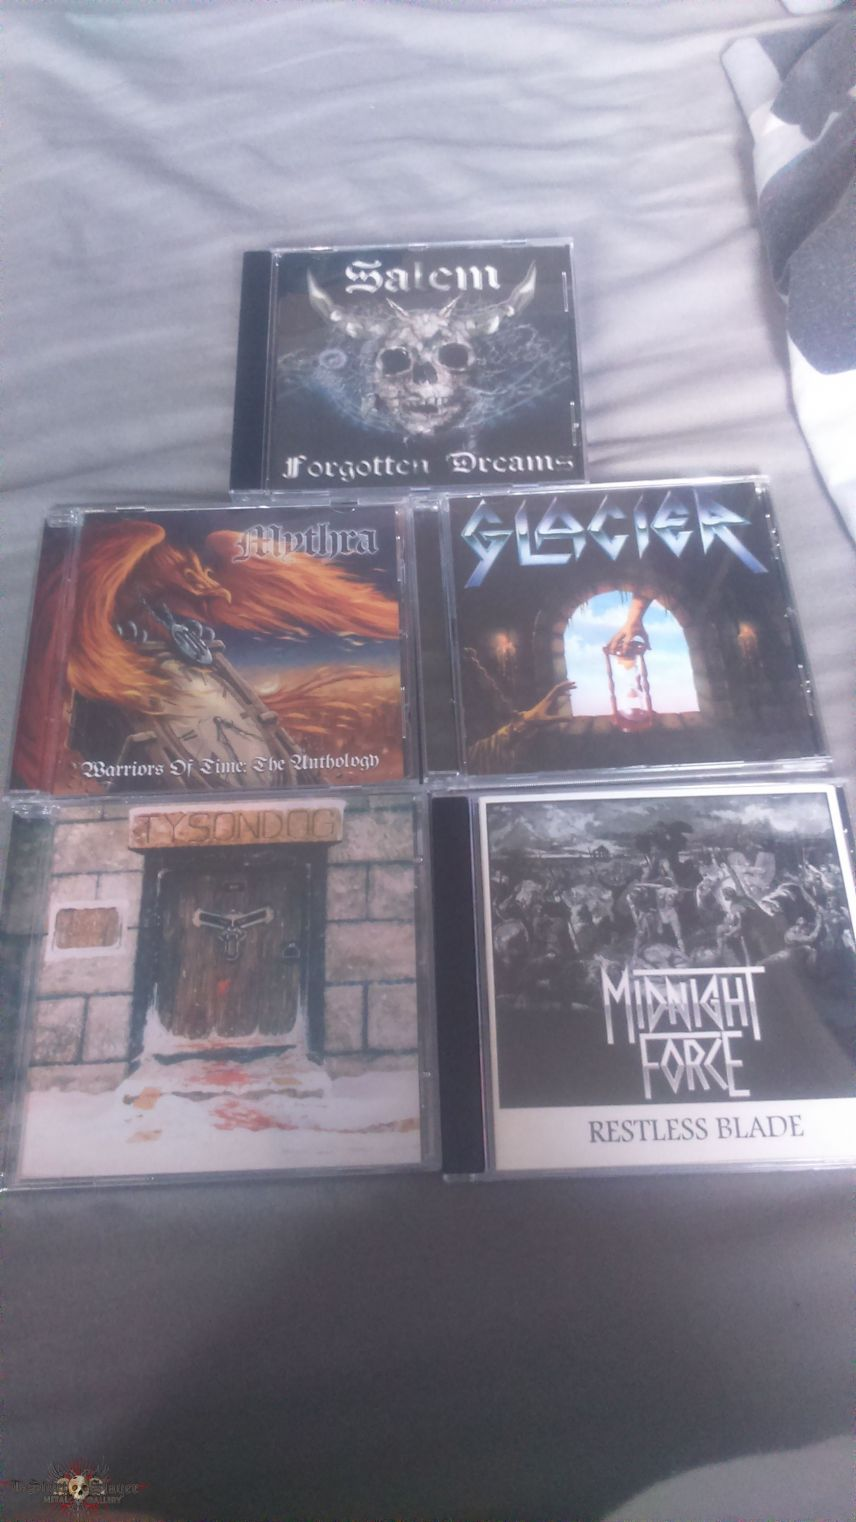 All the CDs I bought from Brofest last weekend!